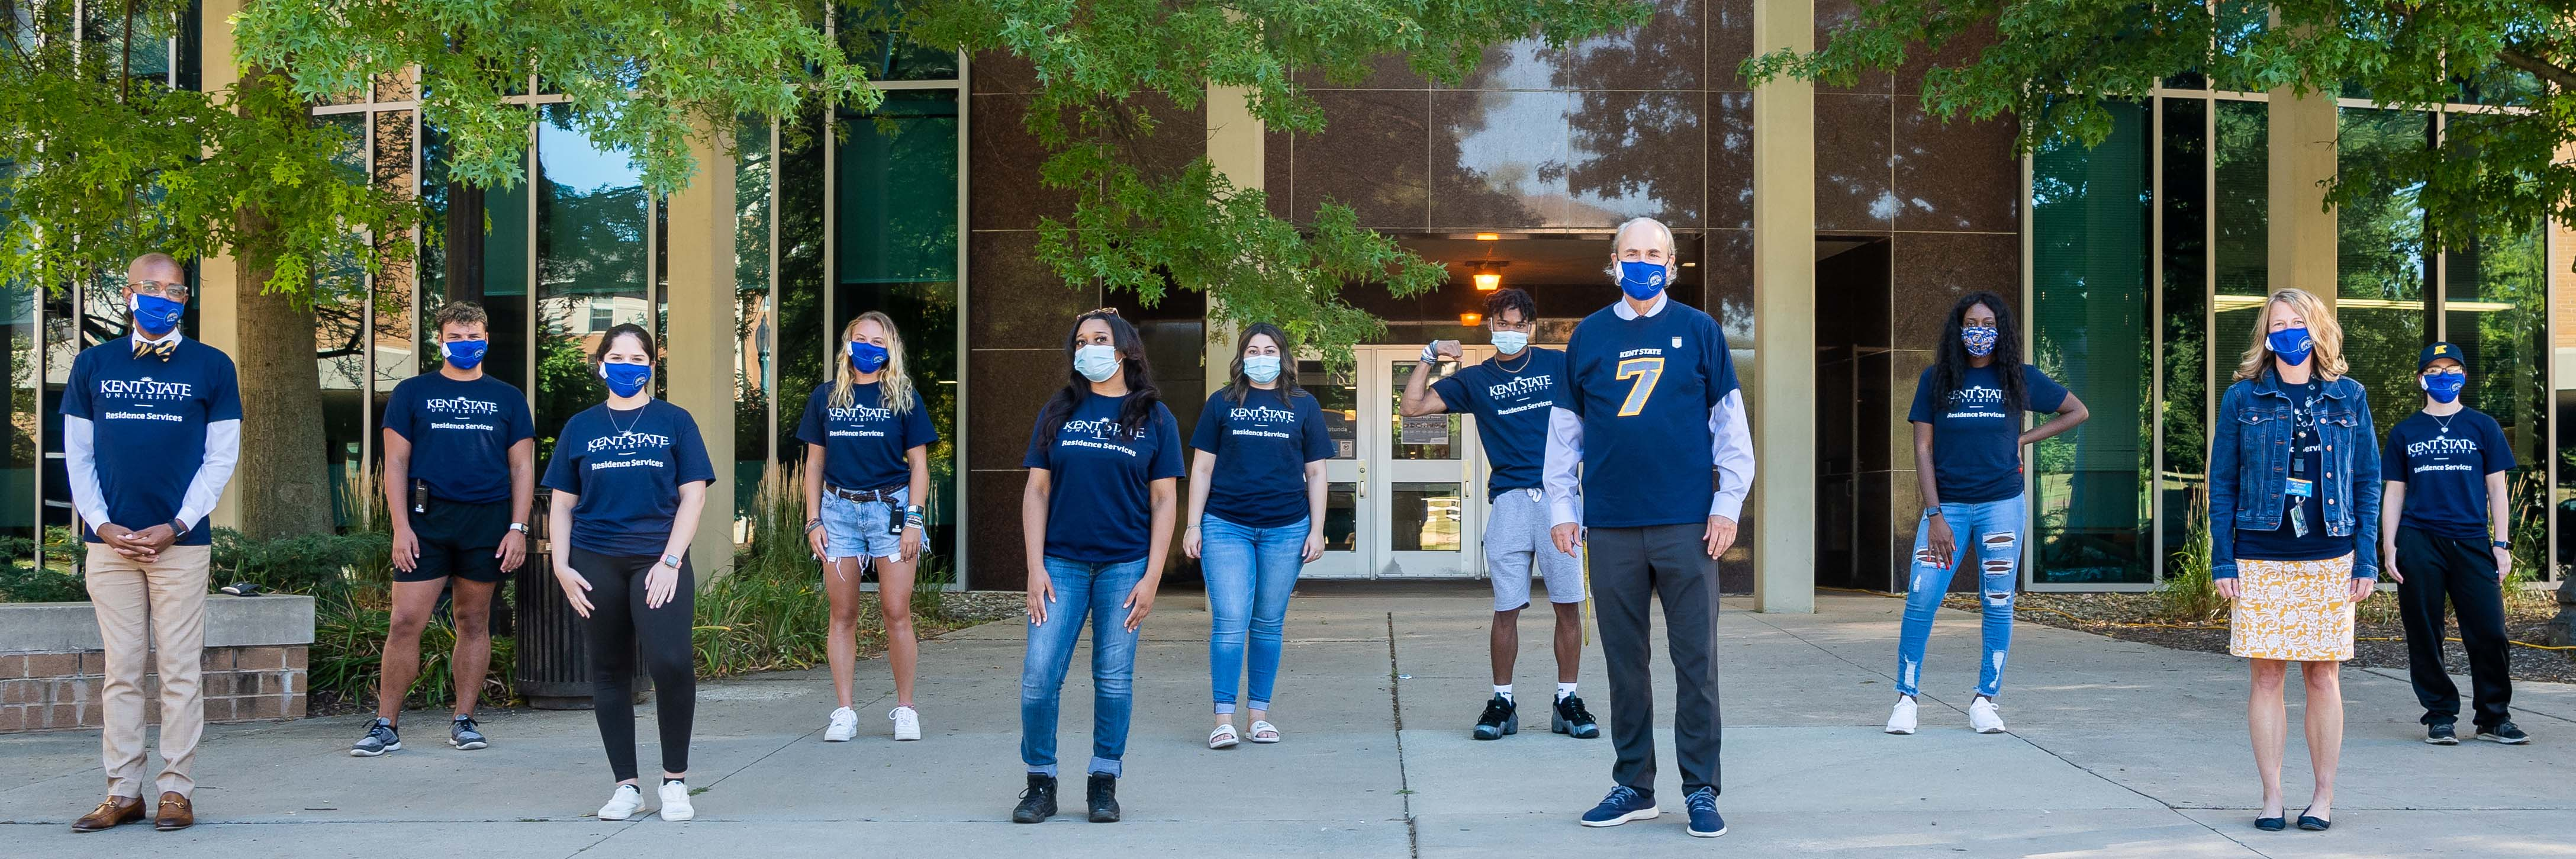 President Todd Diacon prepares for move in with student, faculty and staff volunteers wearing masks and socially distanced during the COVID-19 pandemic.